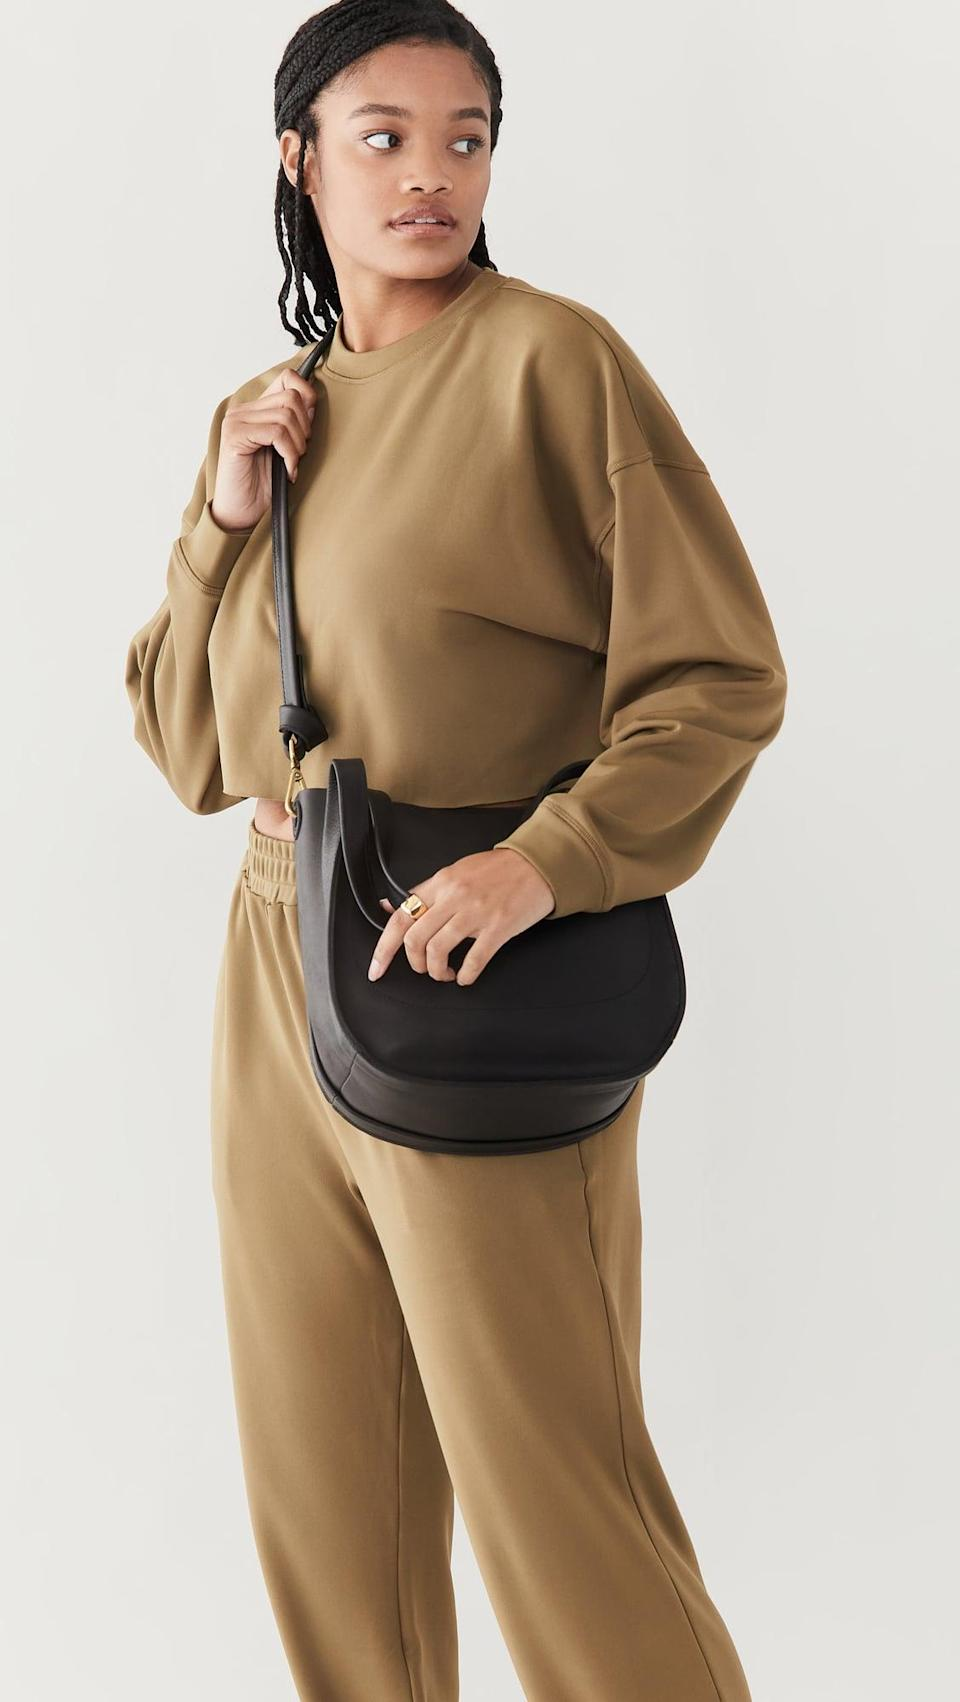 <p>The size and versatility of this <span>Madewell Sydney Shoulder Bag</span> ($168) make it ideal for everyday. It also comes in a pretty caramel shade.</p>